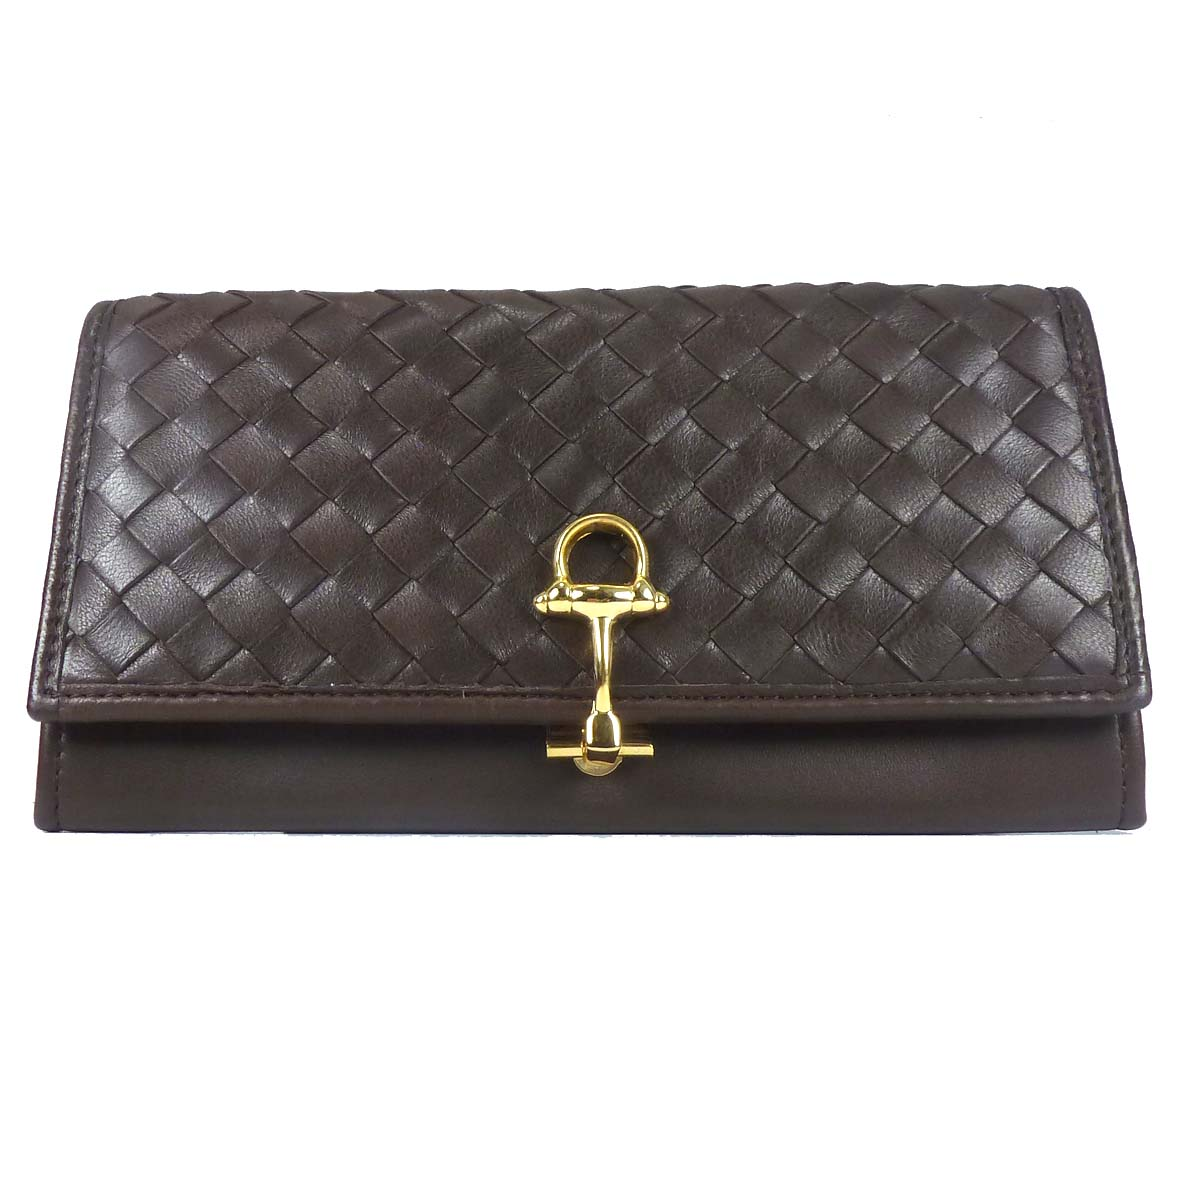 1691 Women's Leather Wallet with metal clip by Bottega Fiorentina